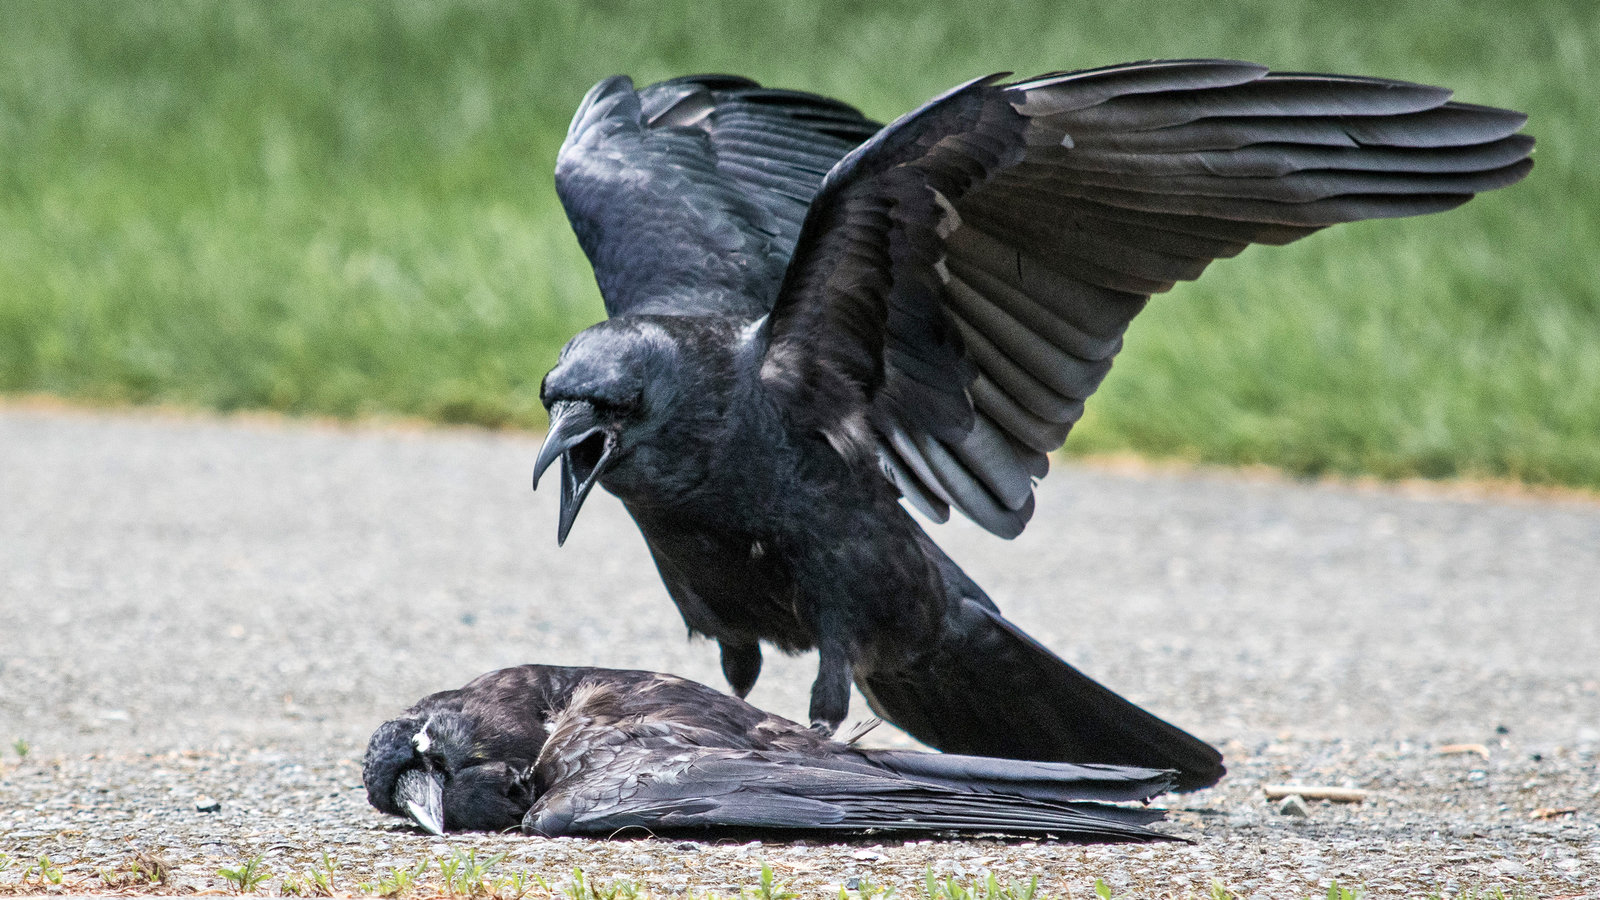 How to Keep Crows Away From Bird Feeders 2021 - Image By nytimes